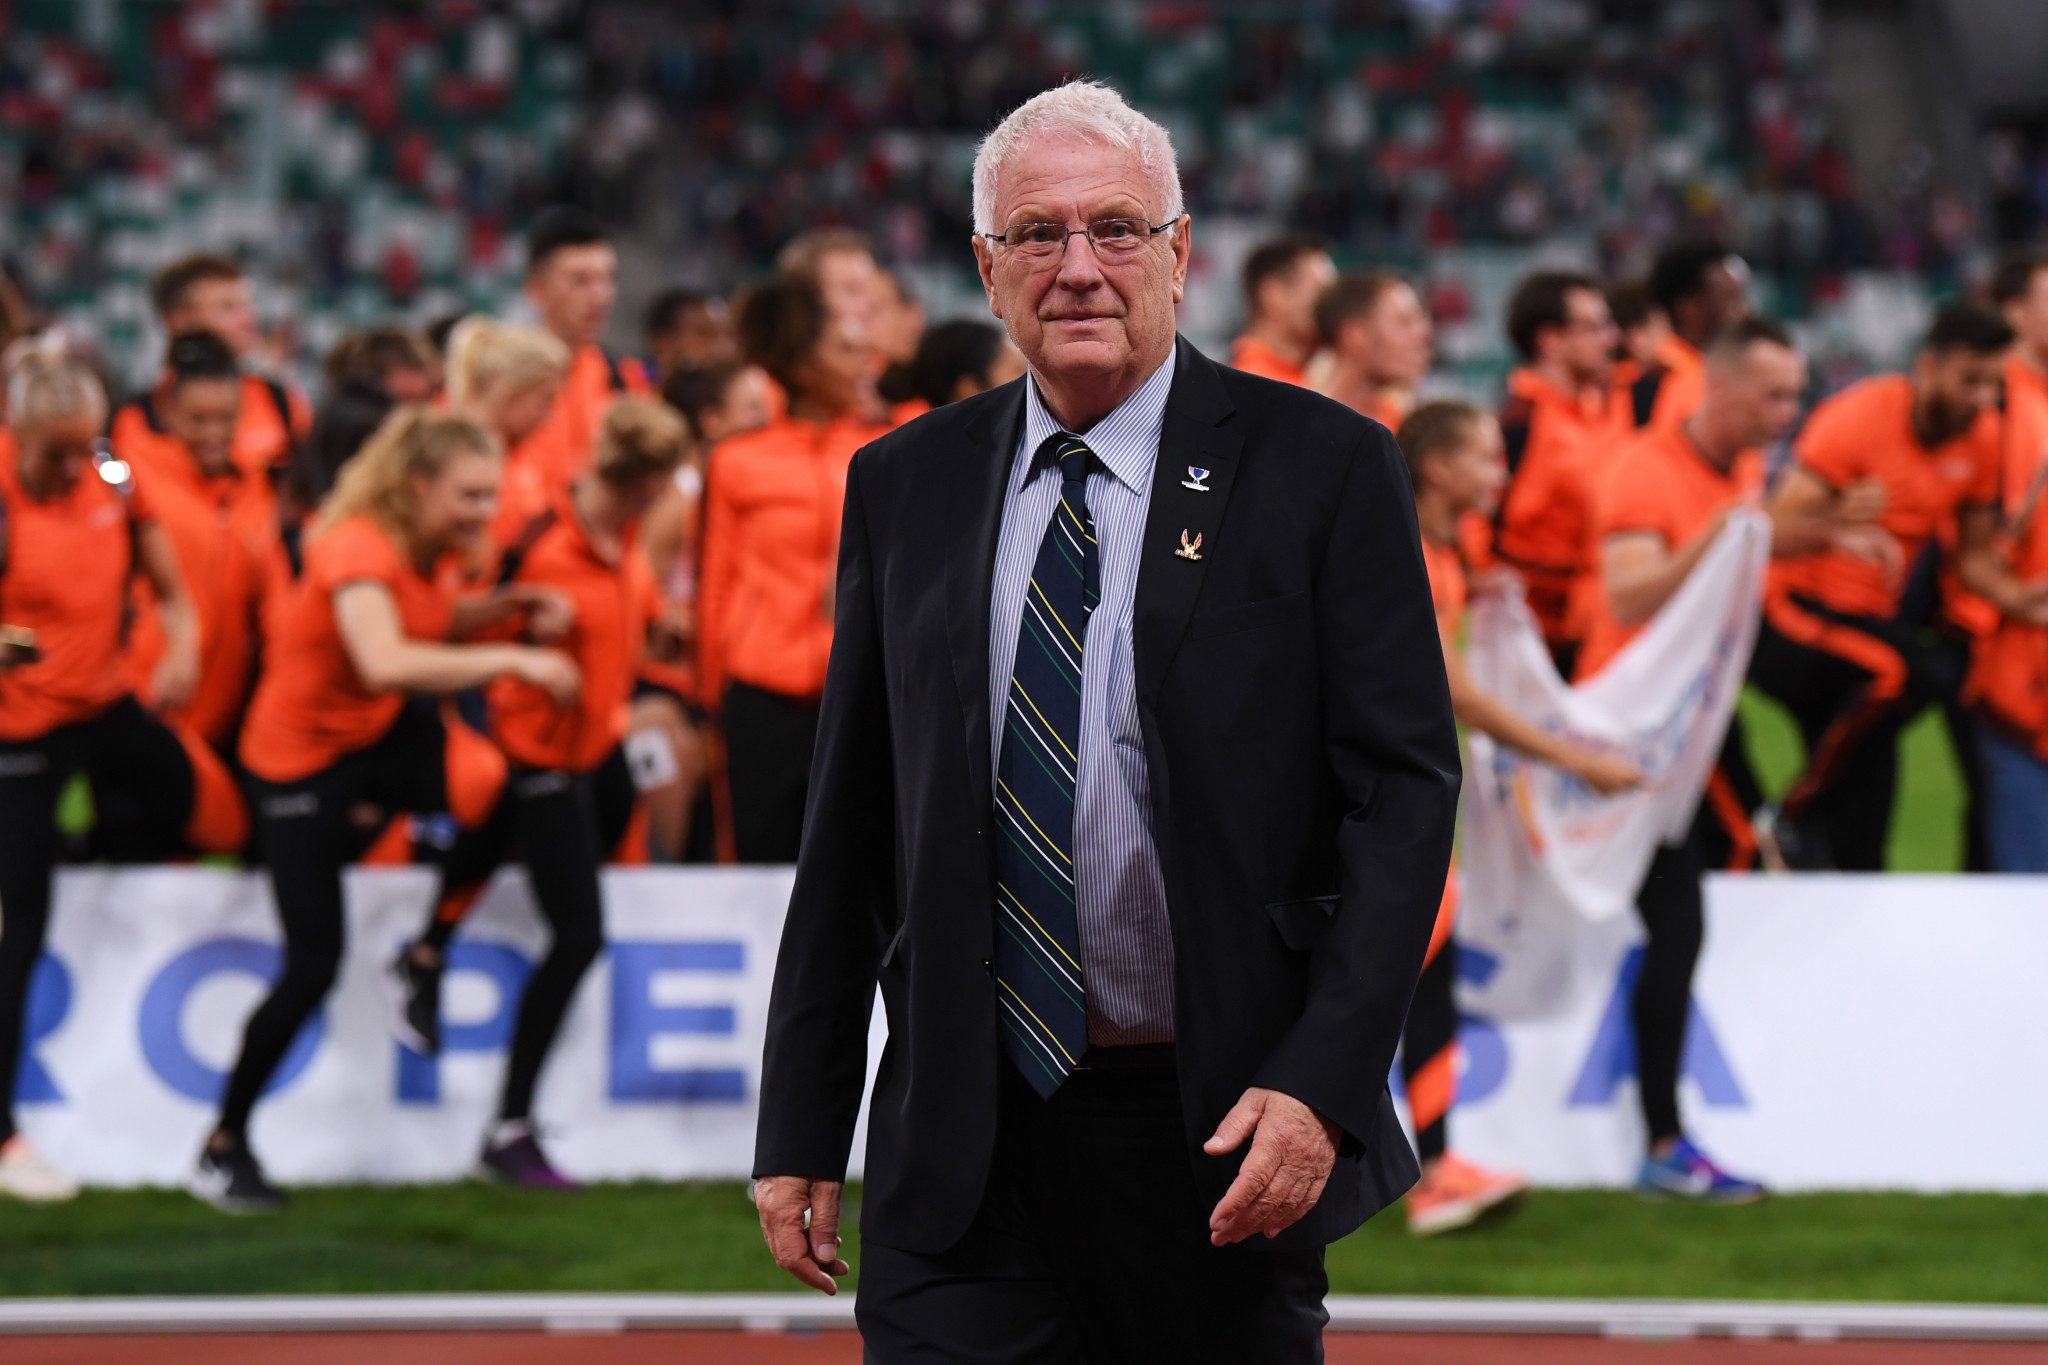 European Athletics President Hansen stable but facing long recovery